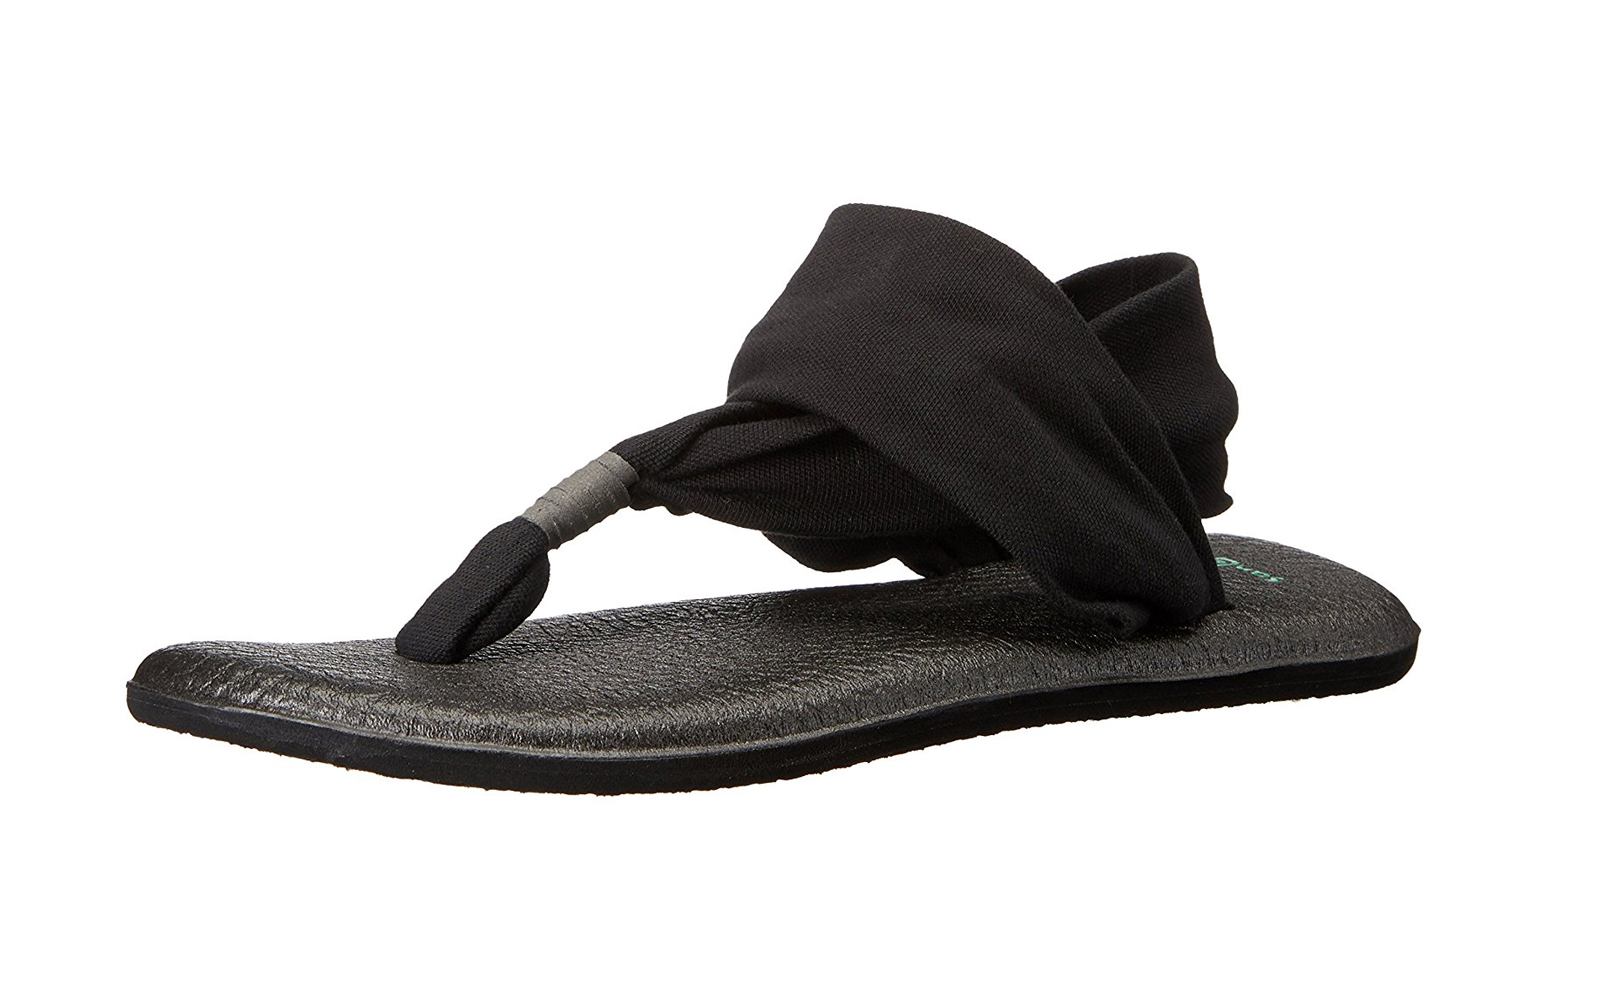 b6df5a5c0f944 These Sandals Are so Comfortable